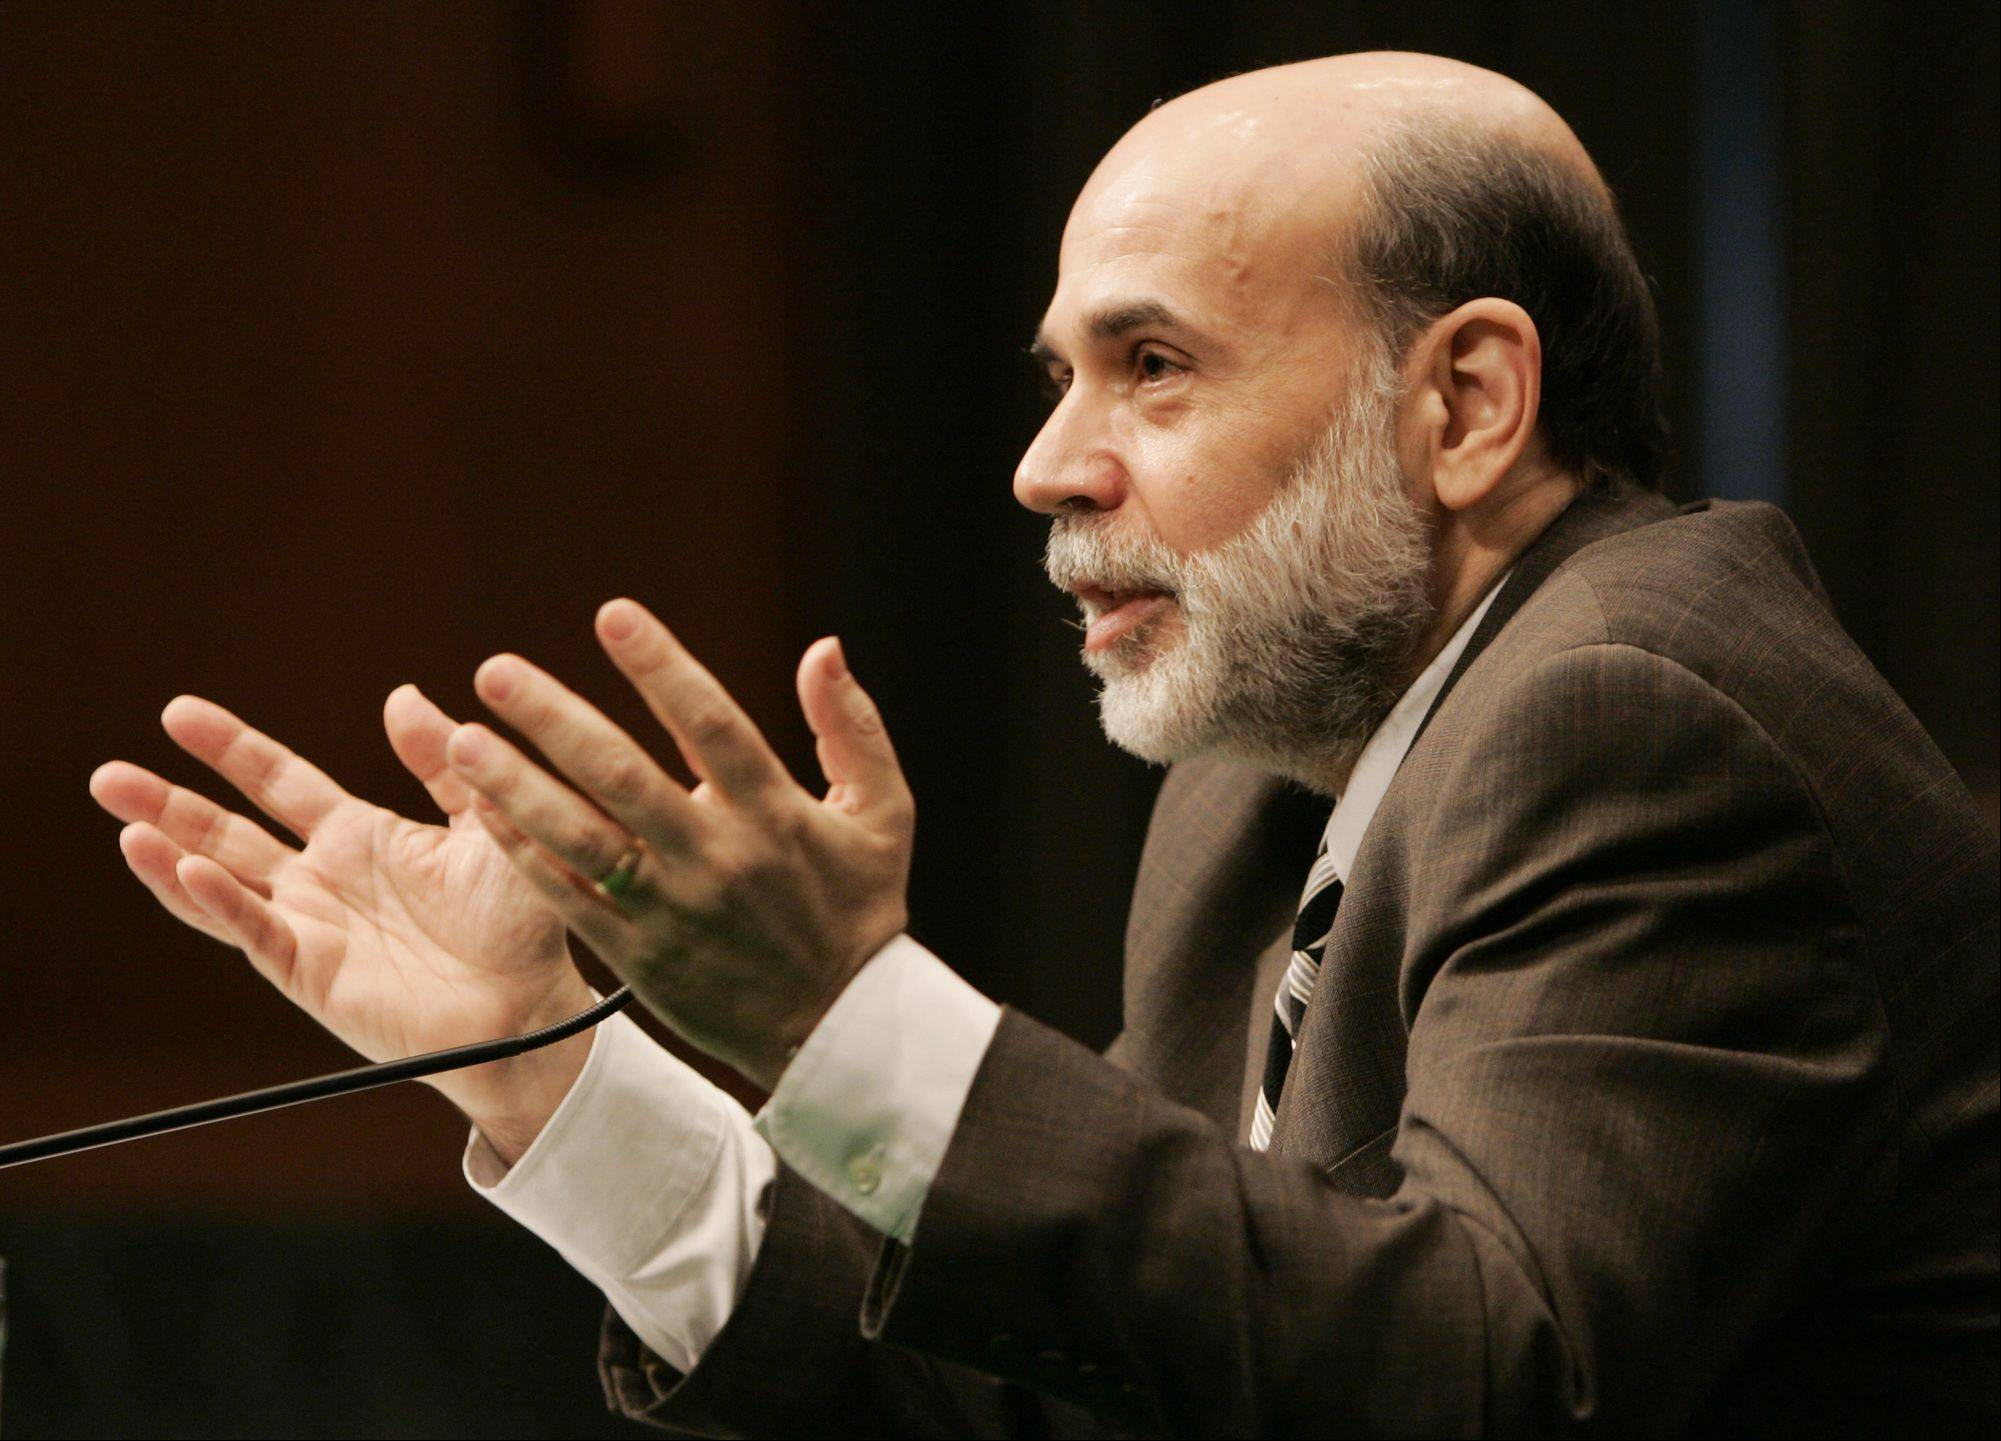 Chairman Ben Bernanke said Monday that the Federal Reserve�s low-interest-rate policies are helping to boost growth around the world and have created markets for products made in developing nations.